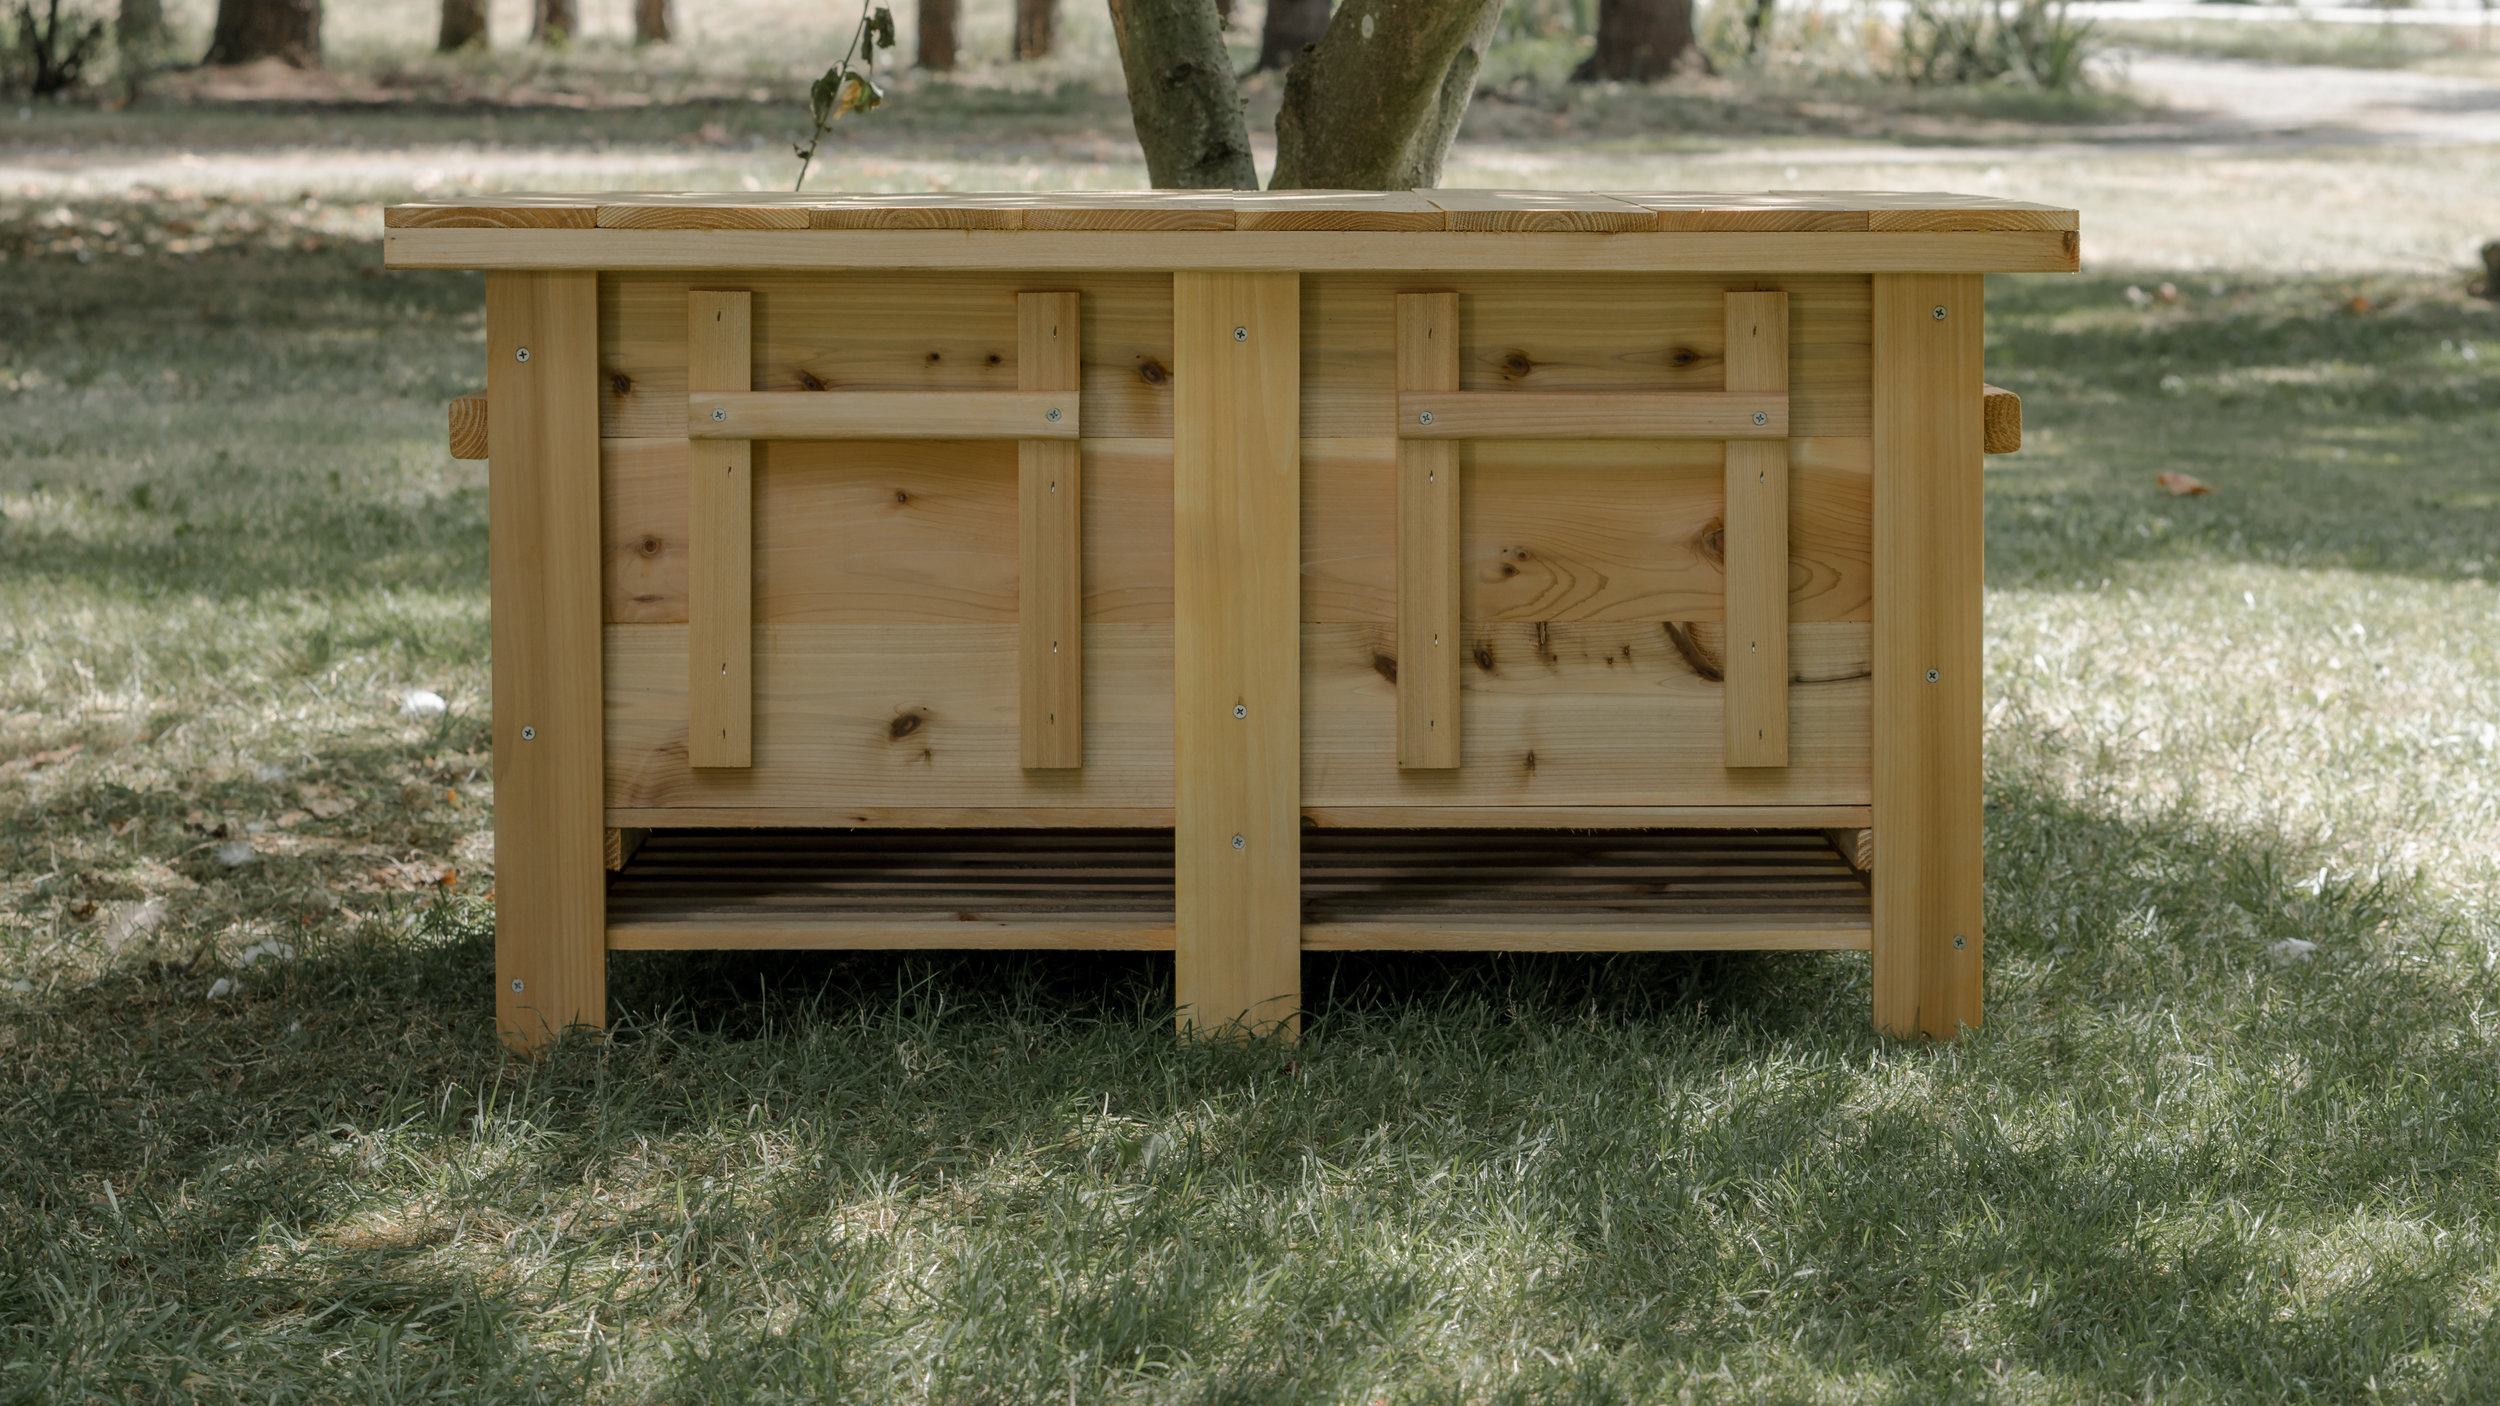 Handmade Compost Bins - We have a variety of designs and sizes